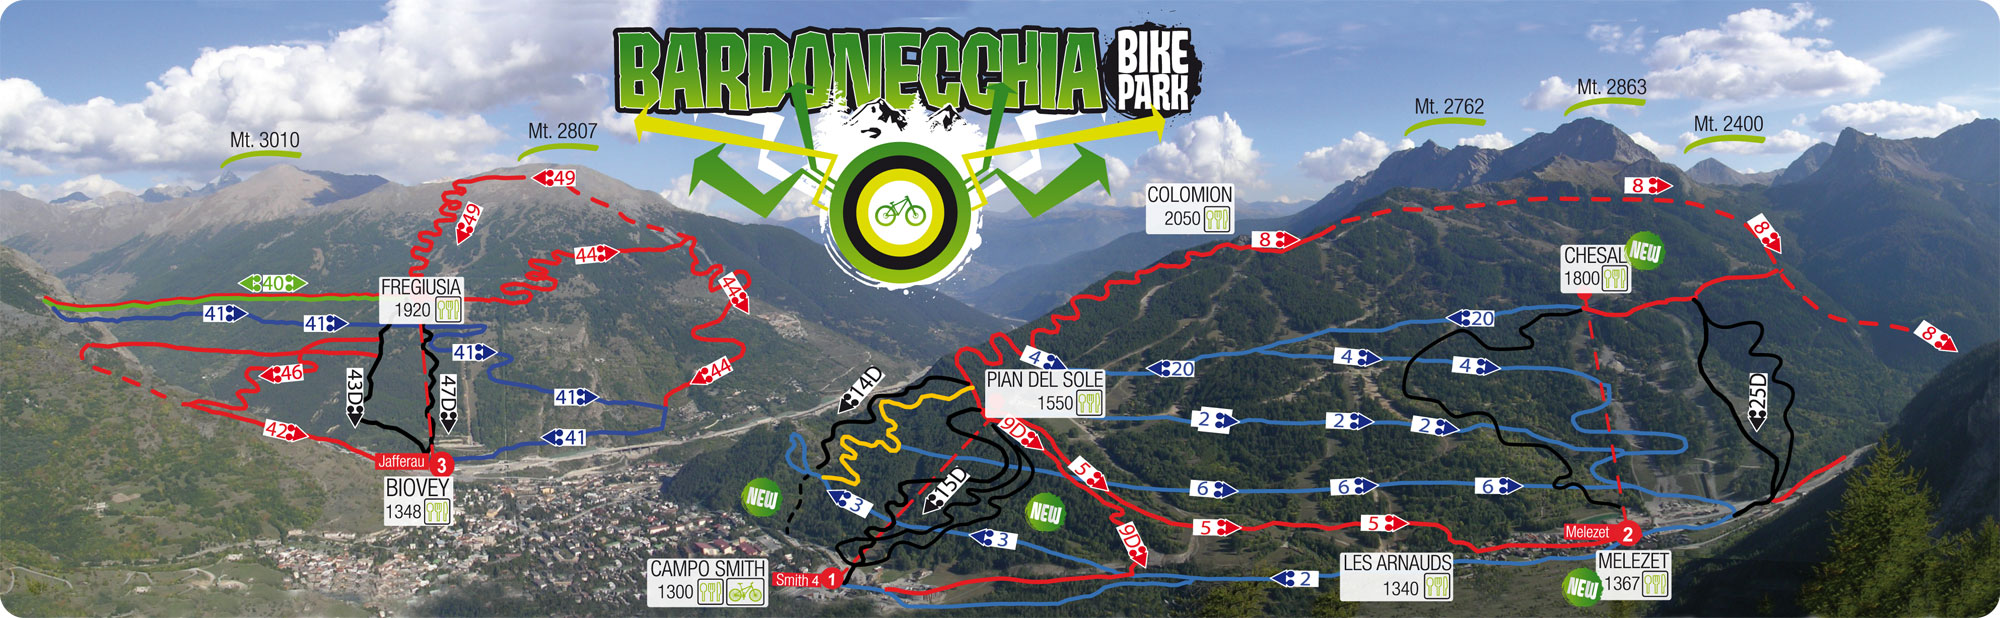 bardonecchia bike trails